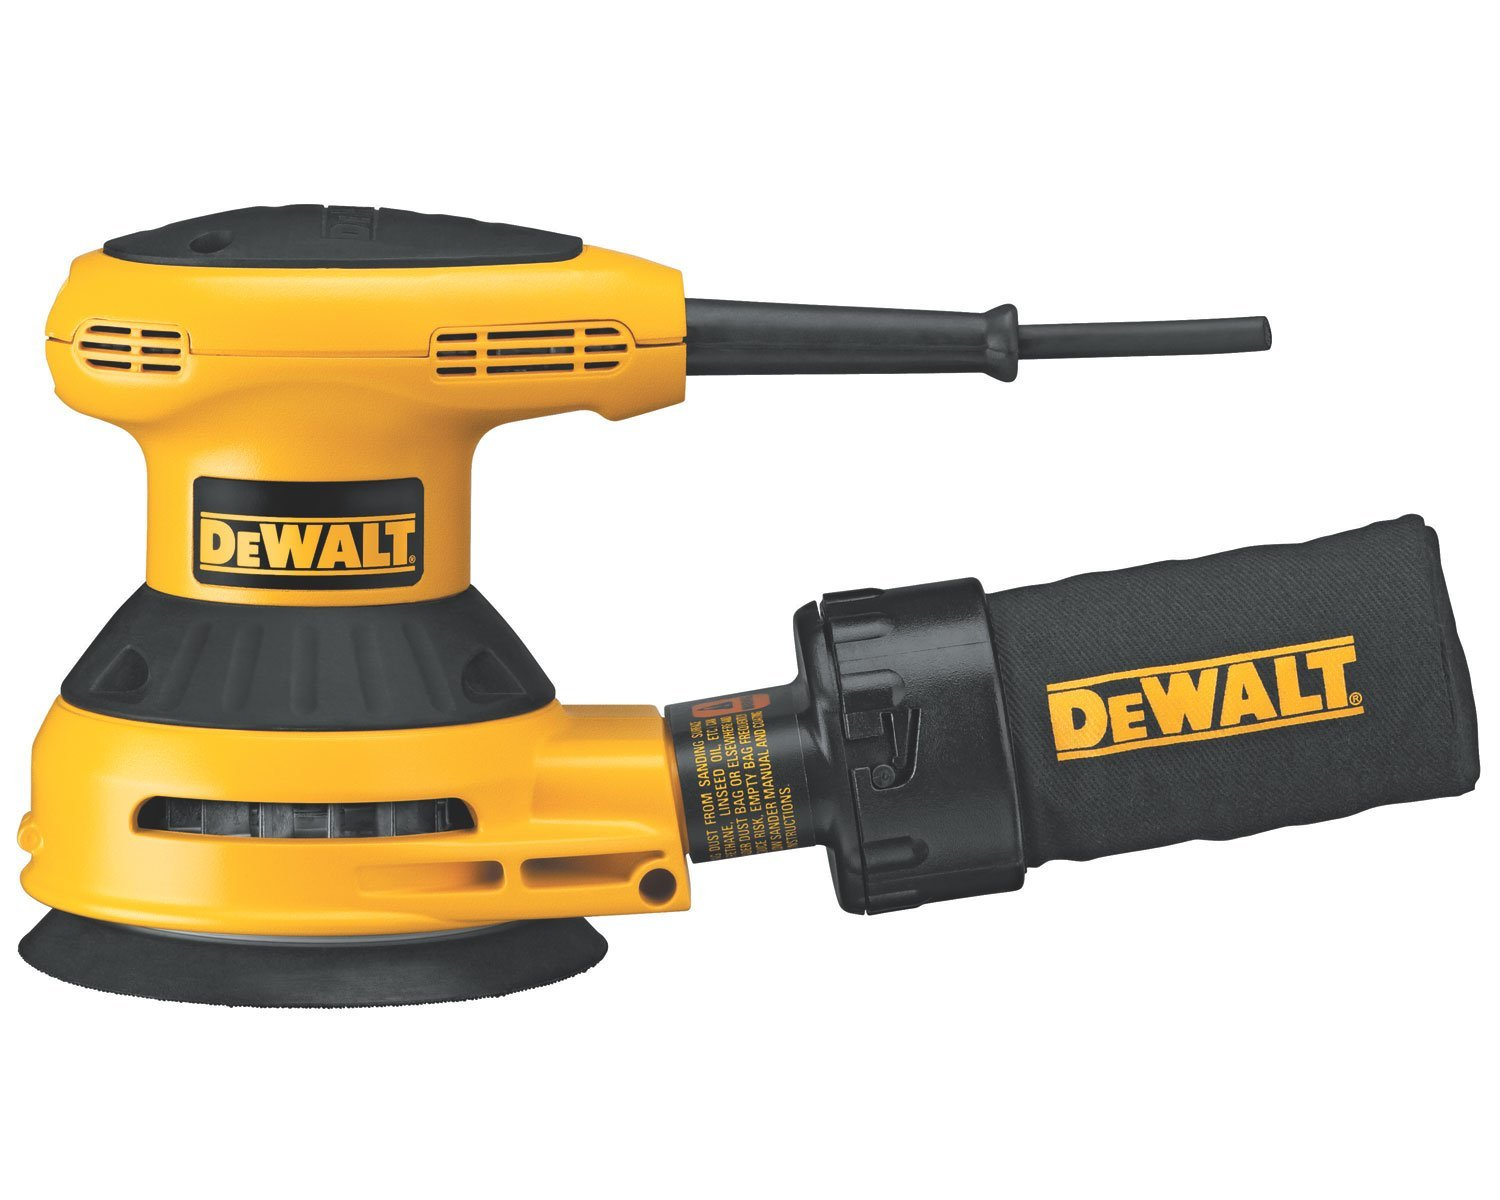 DeWalt Orbital Sander Spares and Parts